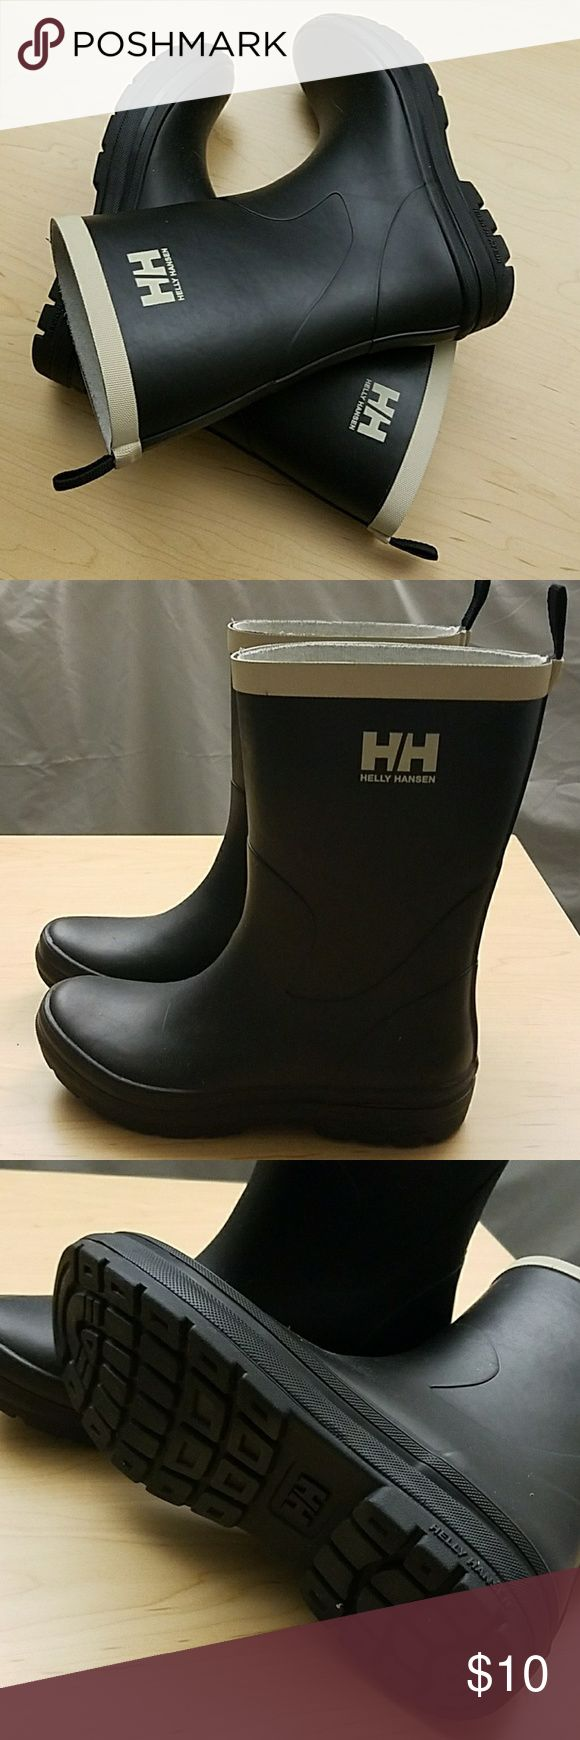 Helly Hansen Rain Boots Worn a couple times. In good condition. Helly Hansen Shoes Winter & Rain Boots